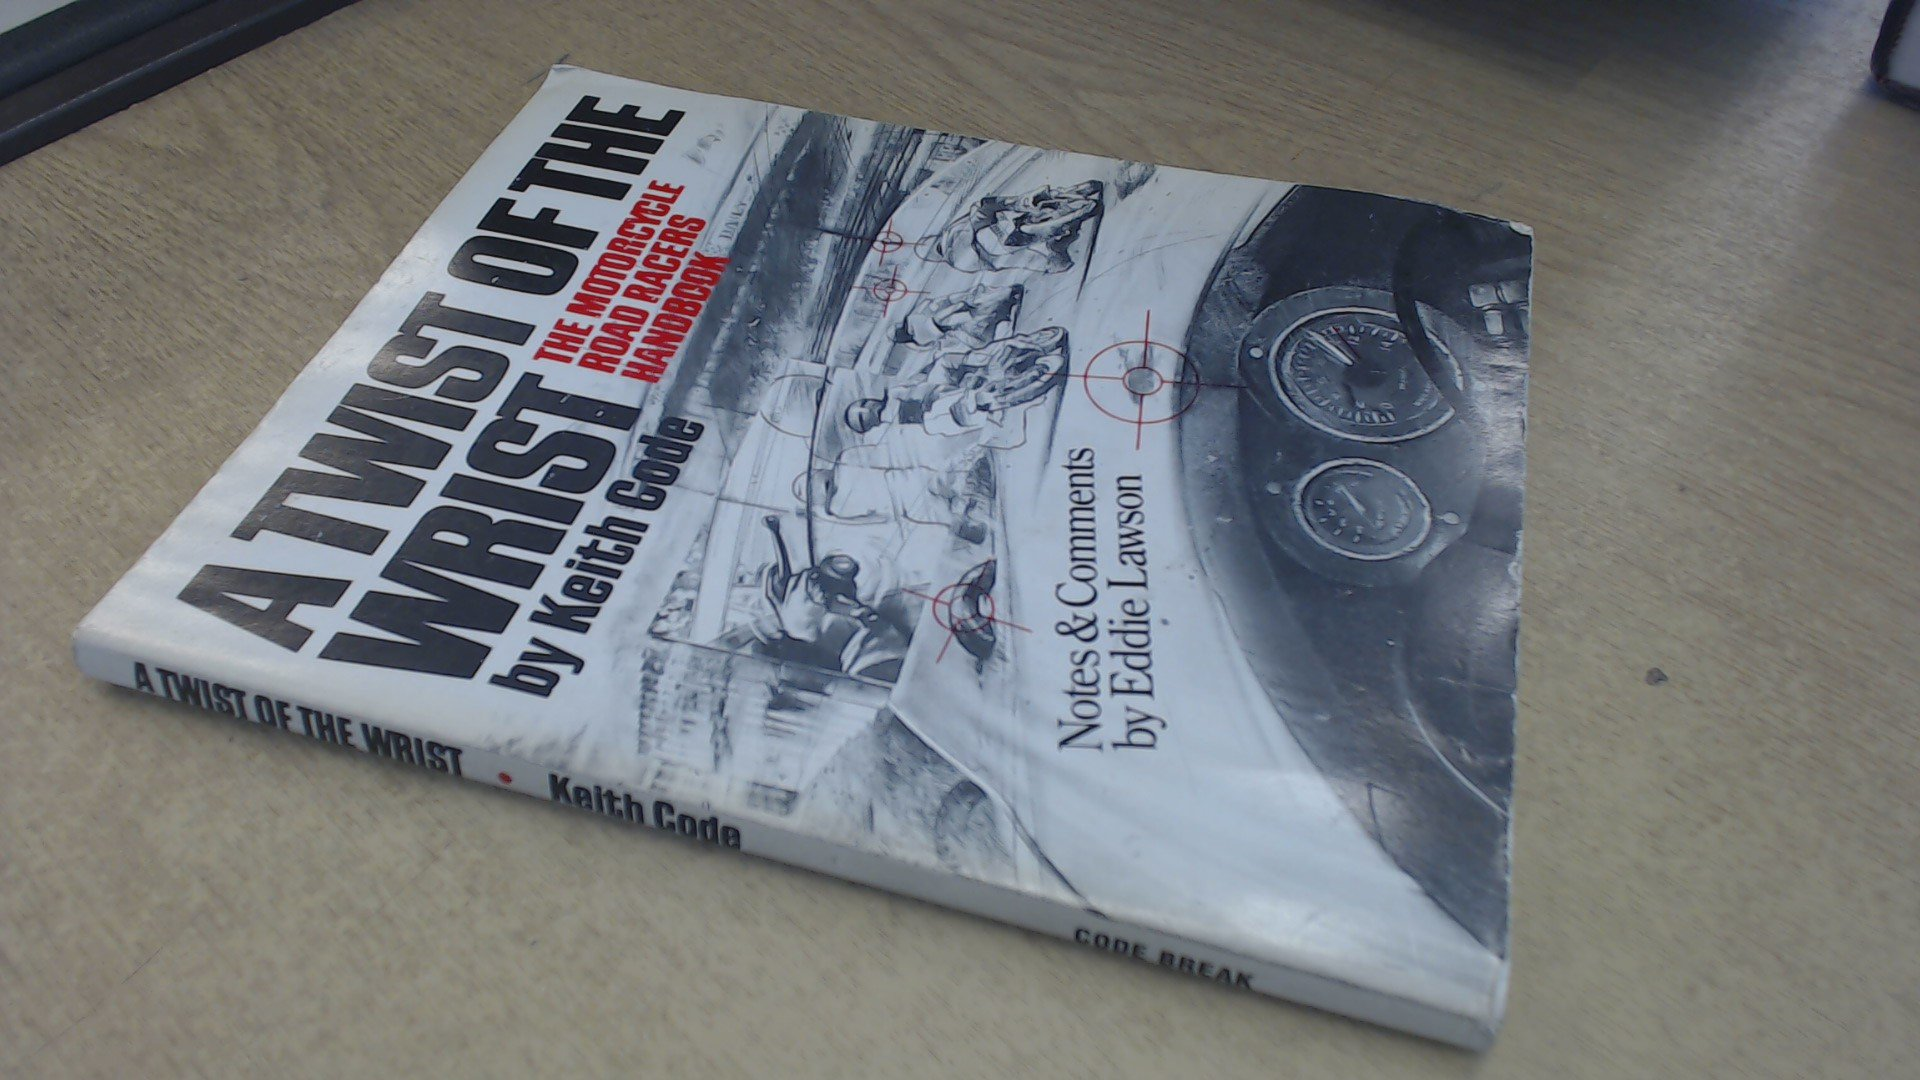 A Twist of the Wrist: The Motorcycle Road Racers Handbook, Keith Code